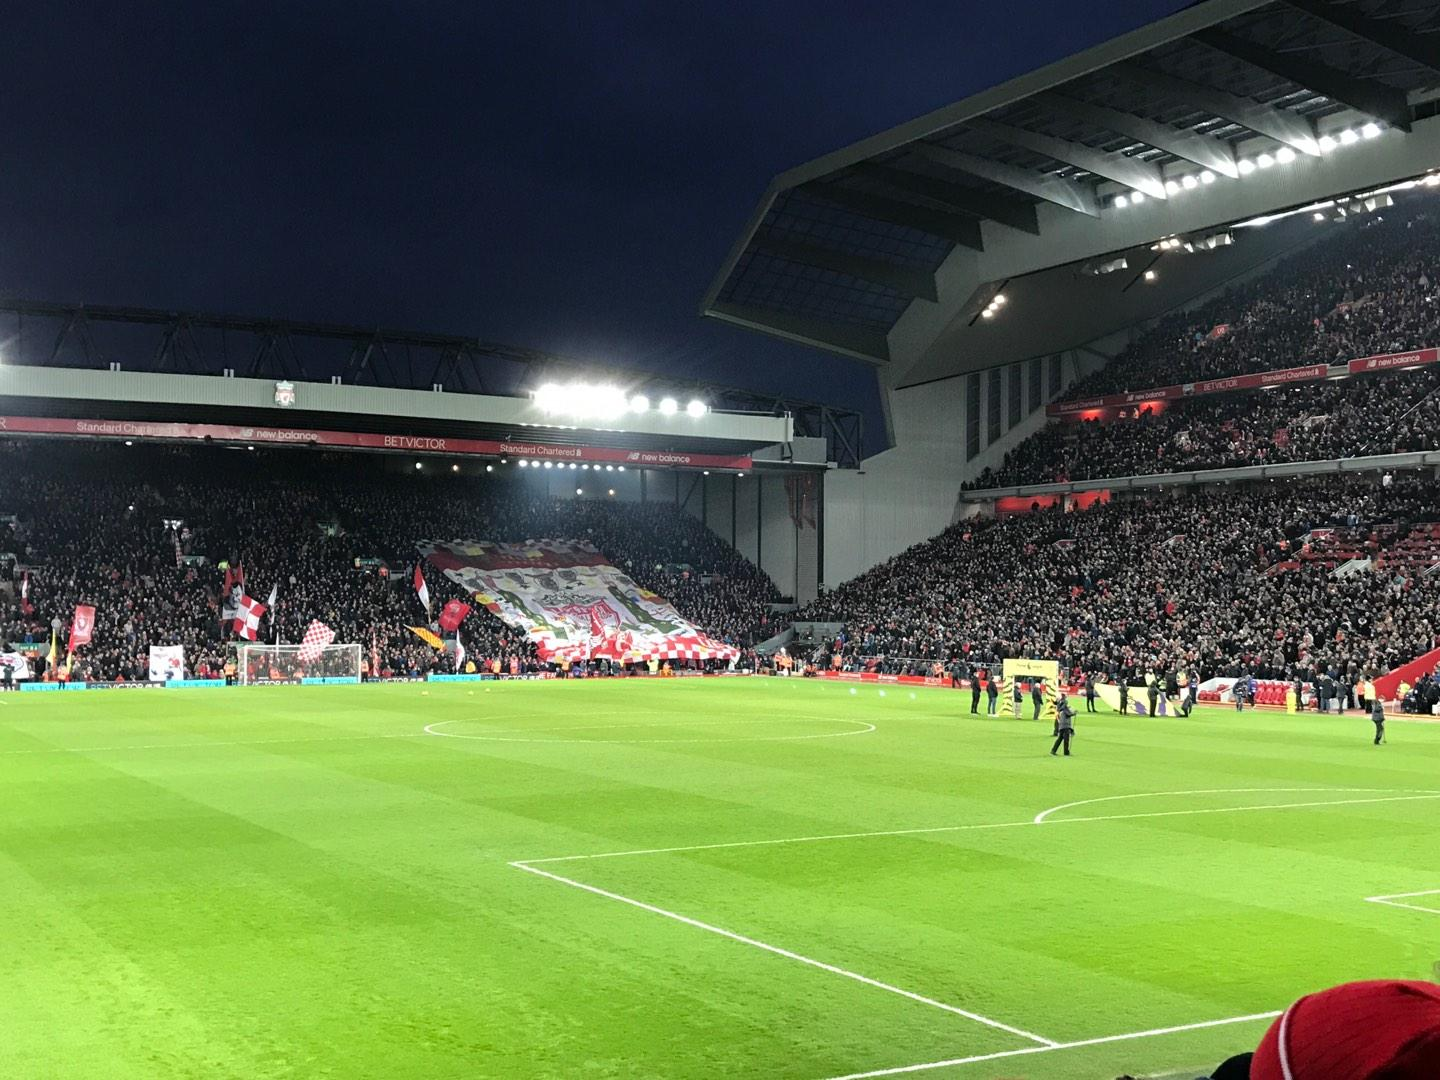 Anfield Section 127 Row 17 Seat 178